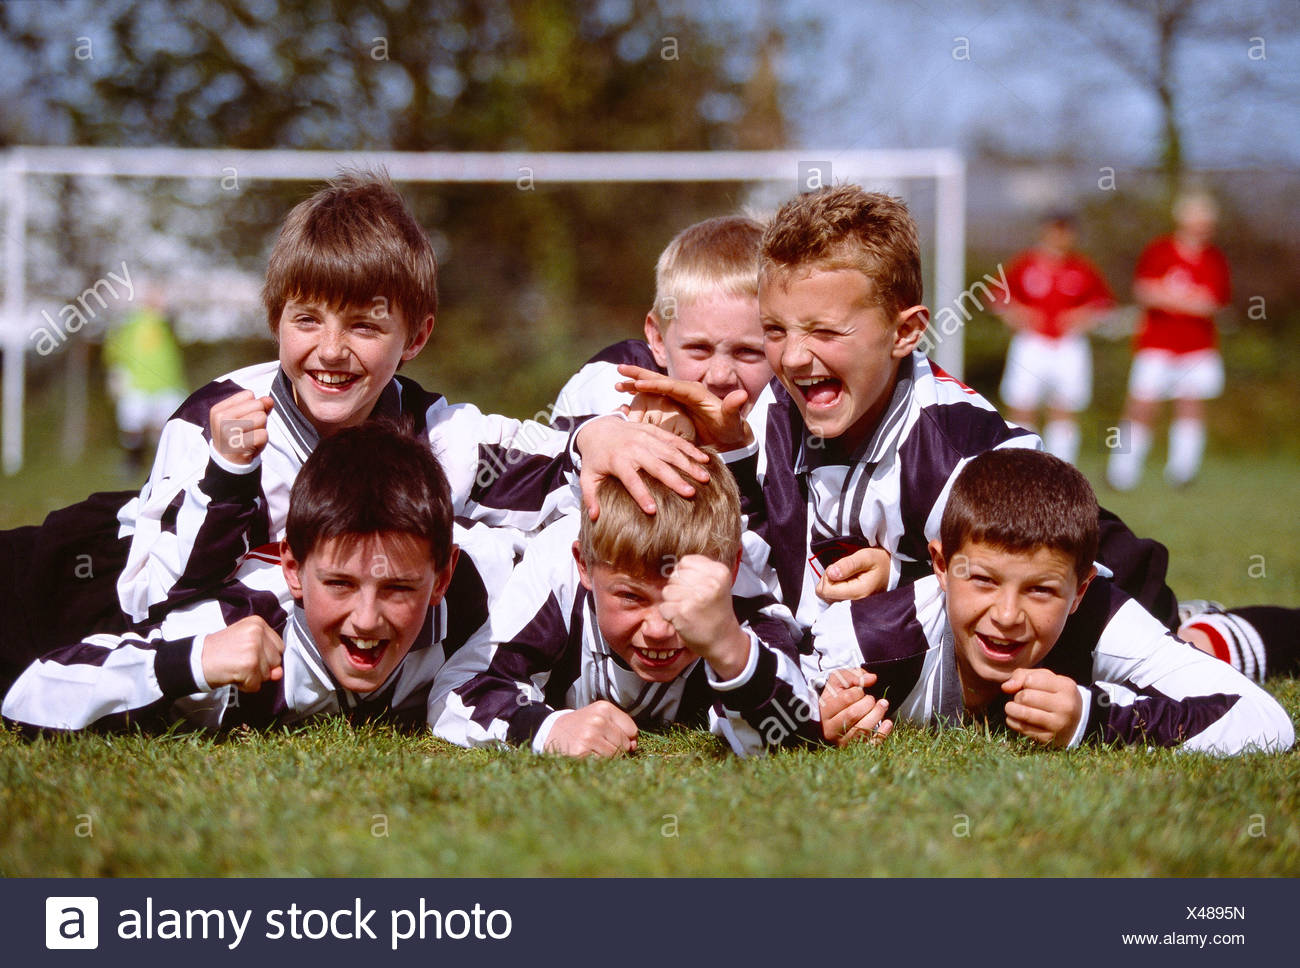 Children. Sport. Group of happy boys celebrating victory at end of Soccer game. - Stock Image